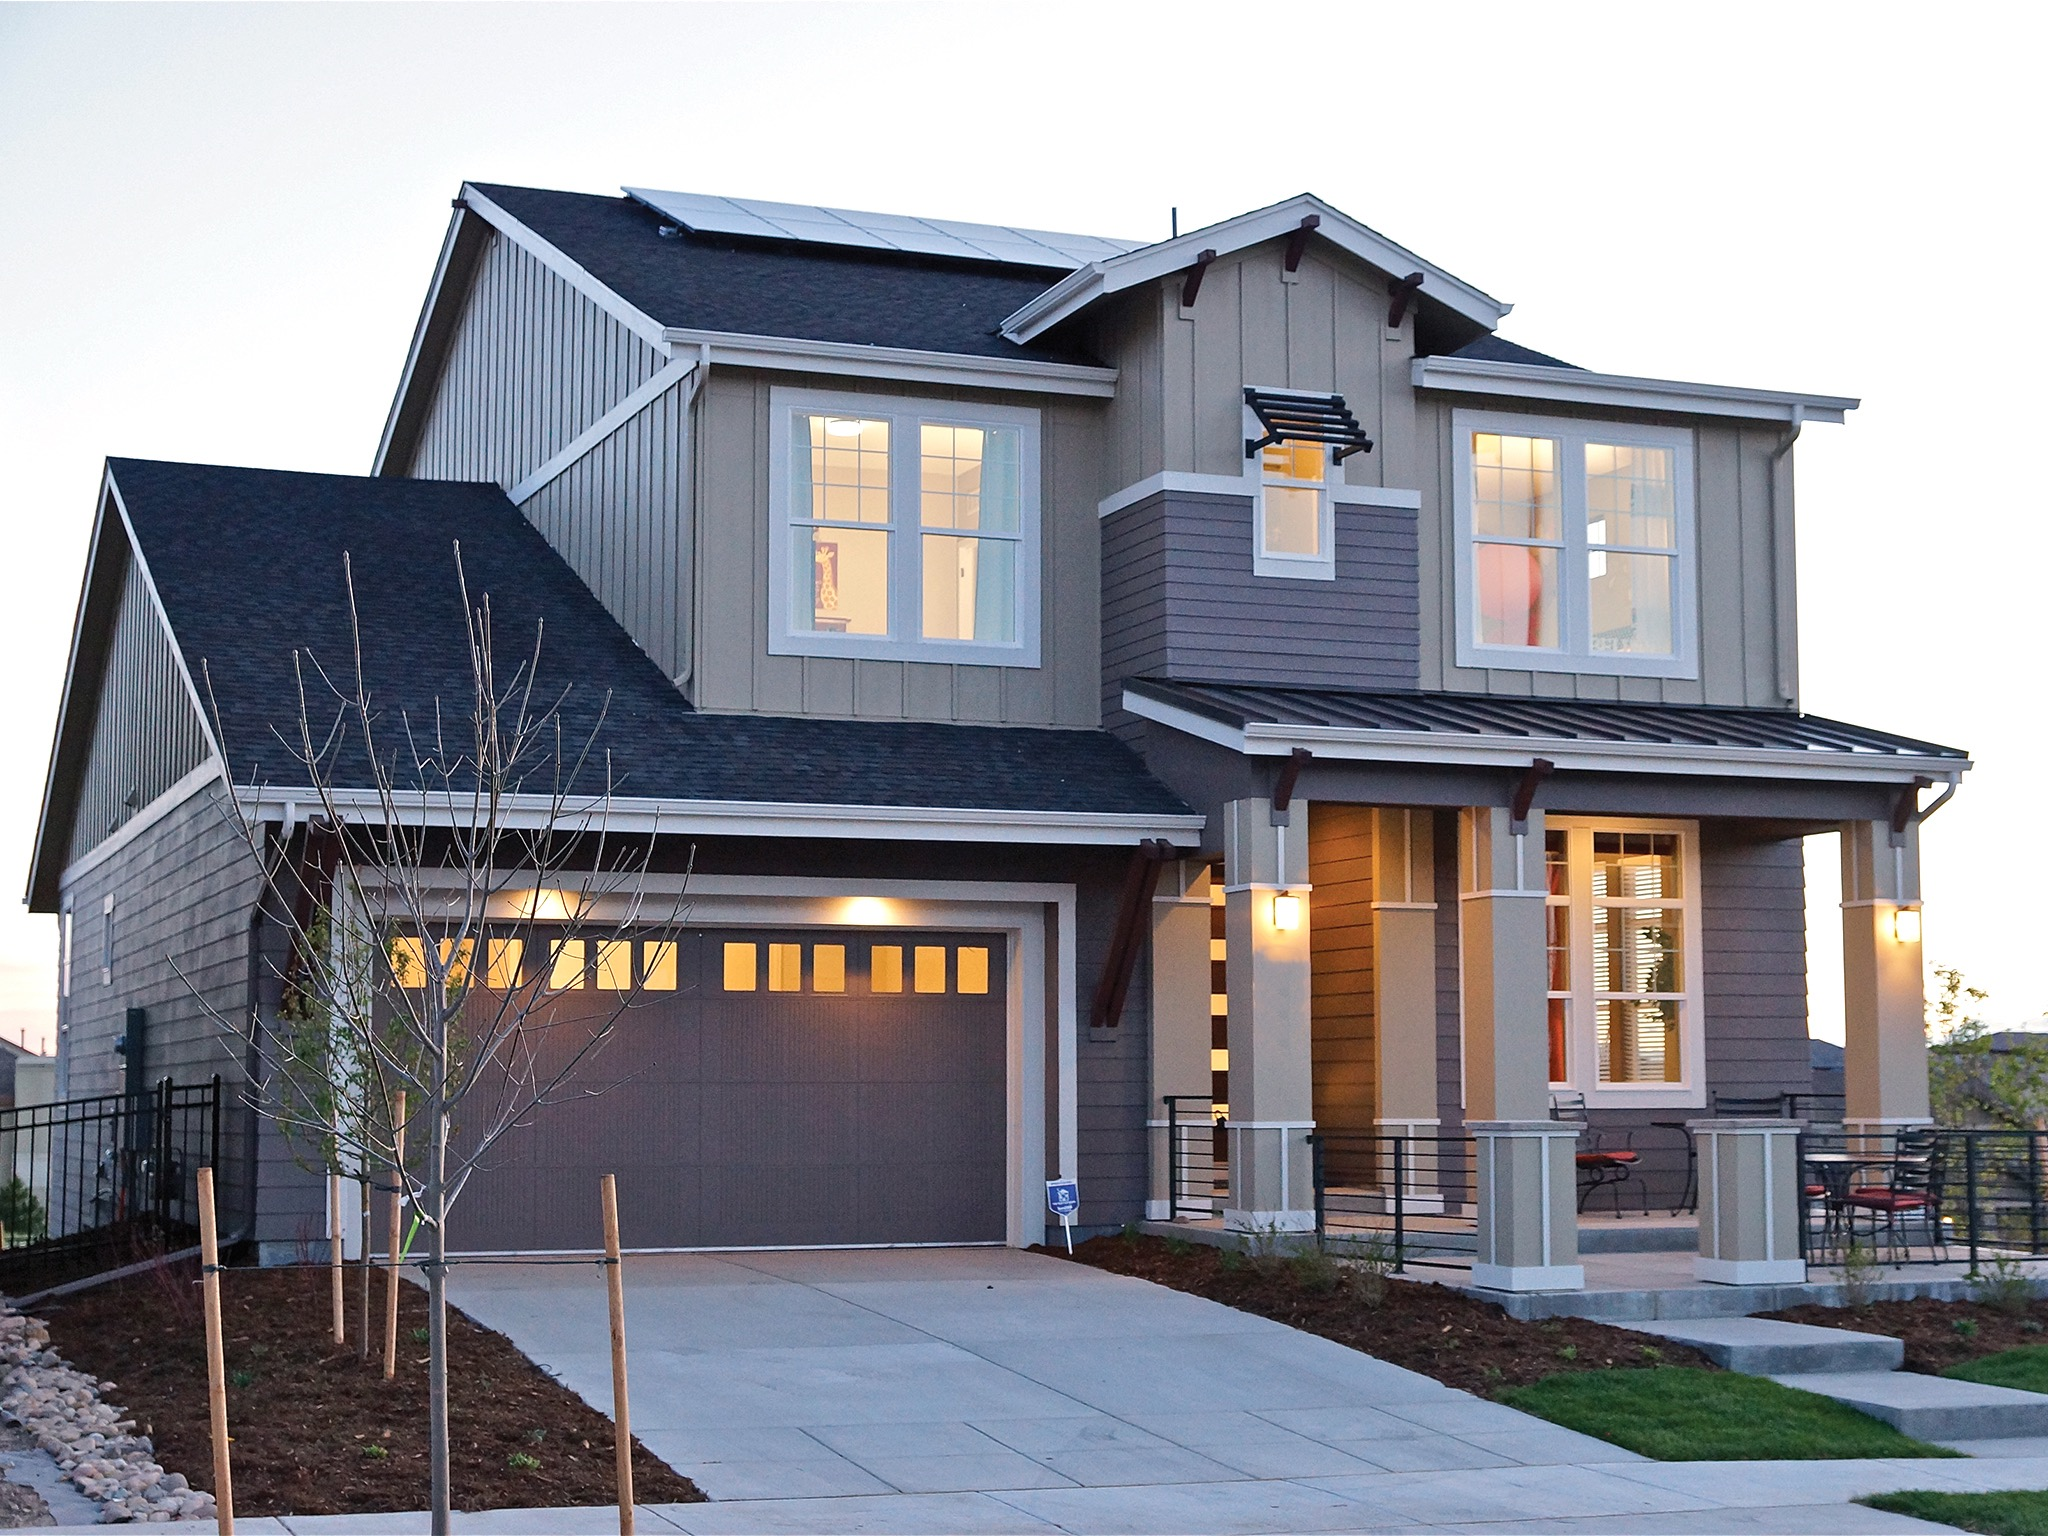 Modern Garage Door With Wood Accents For American House Exterior (Image 23 of 38)